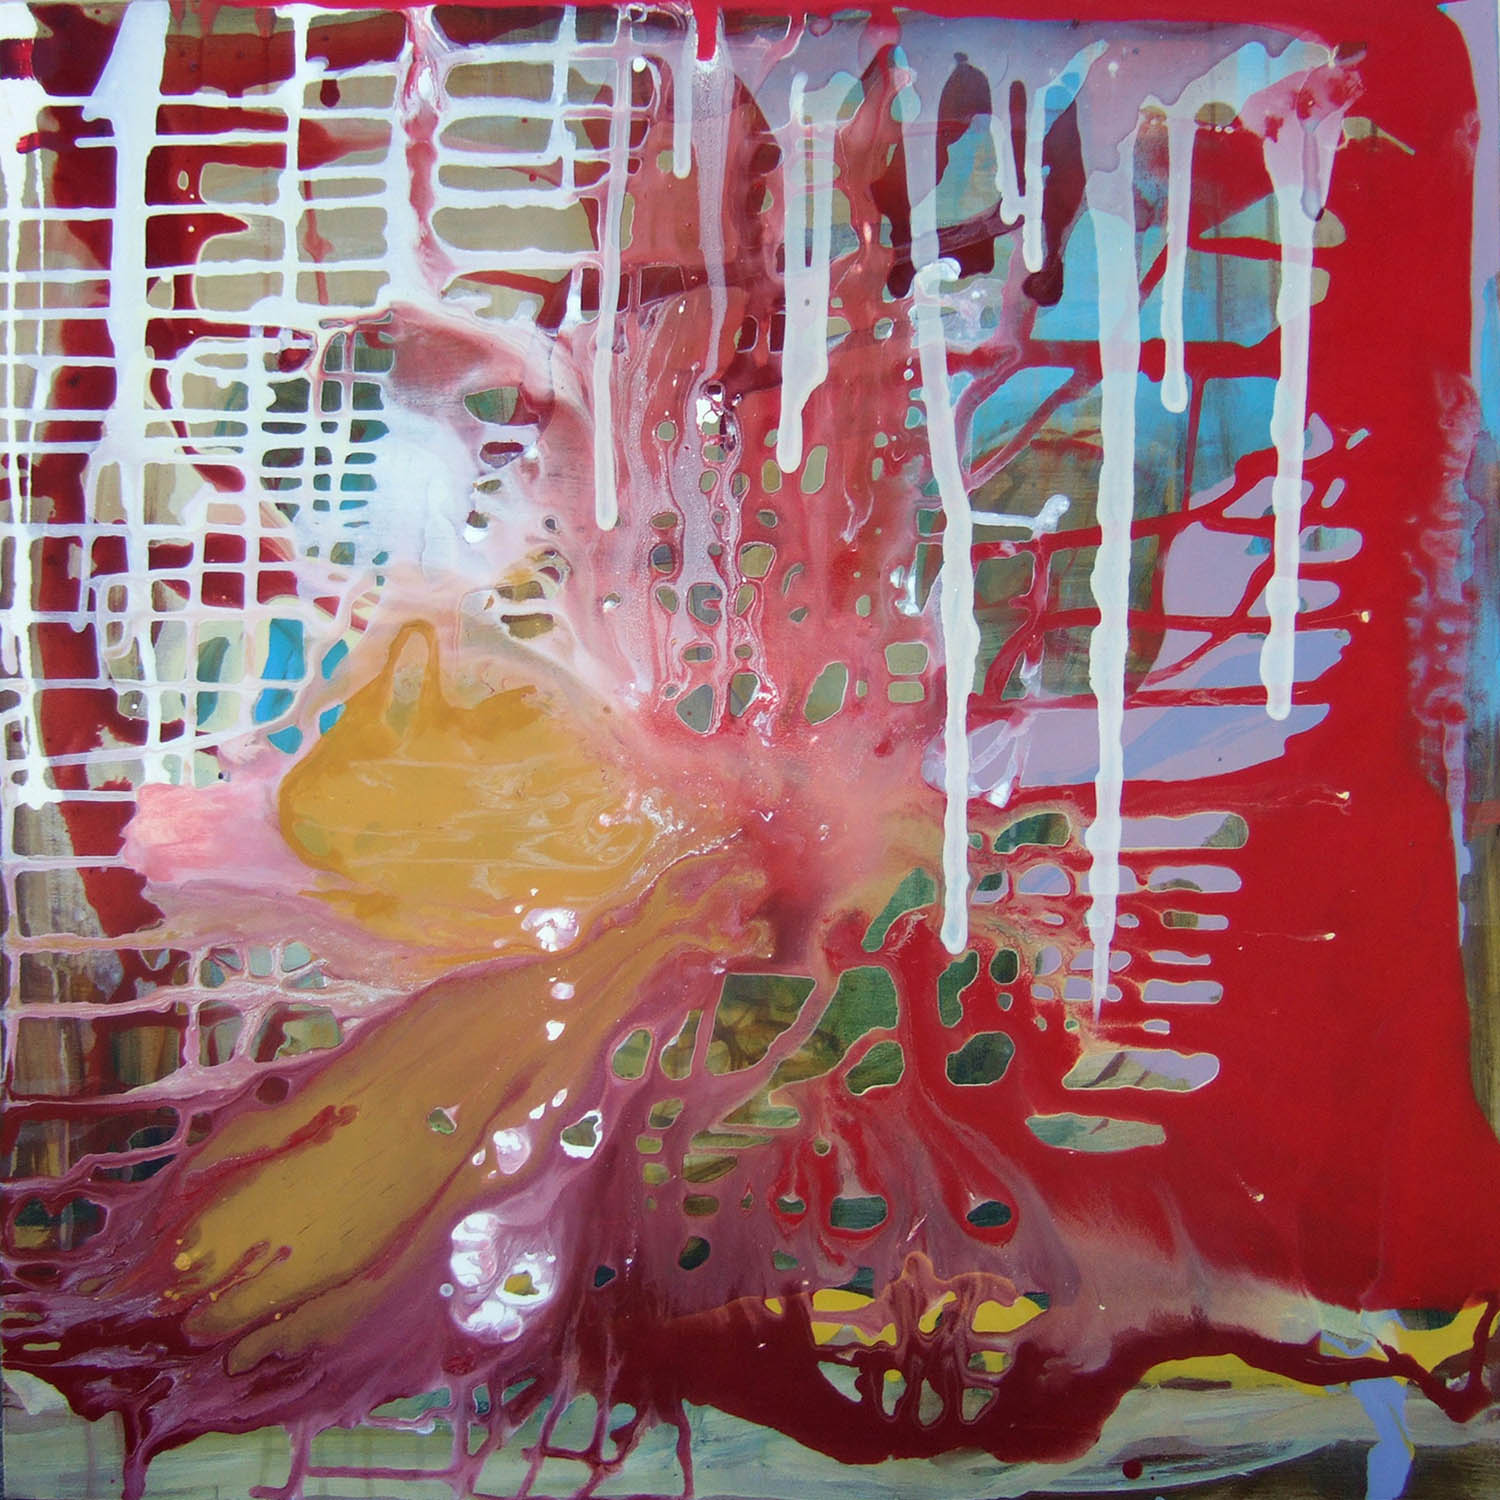 Chaos (2007), ink, acrylic and resin on canvas, 100 x 100cm